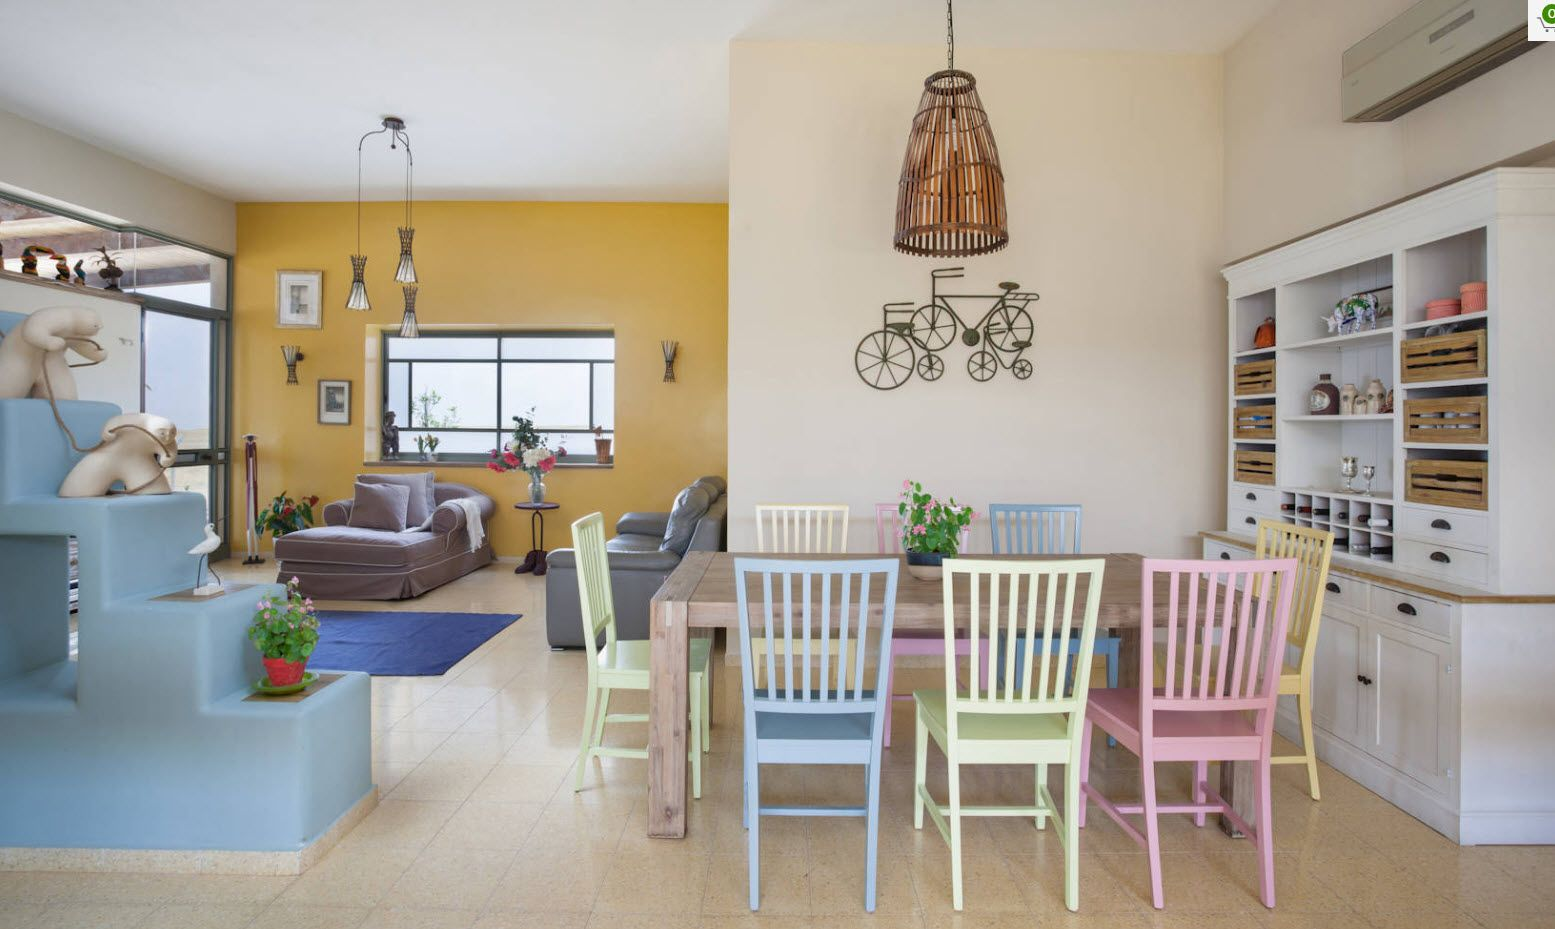 Dining Zone Table and Chairs: Practical and Aesthetic Composition. Alternative color combination for wooden stools